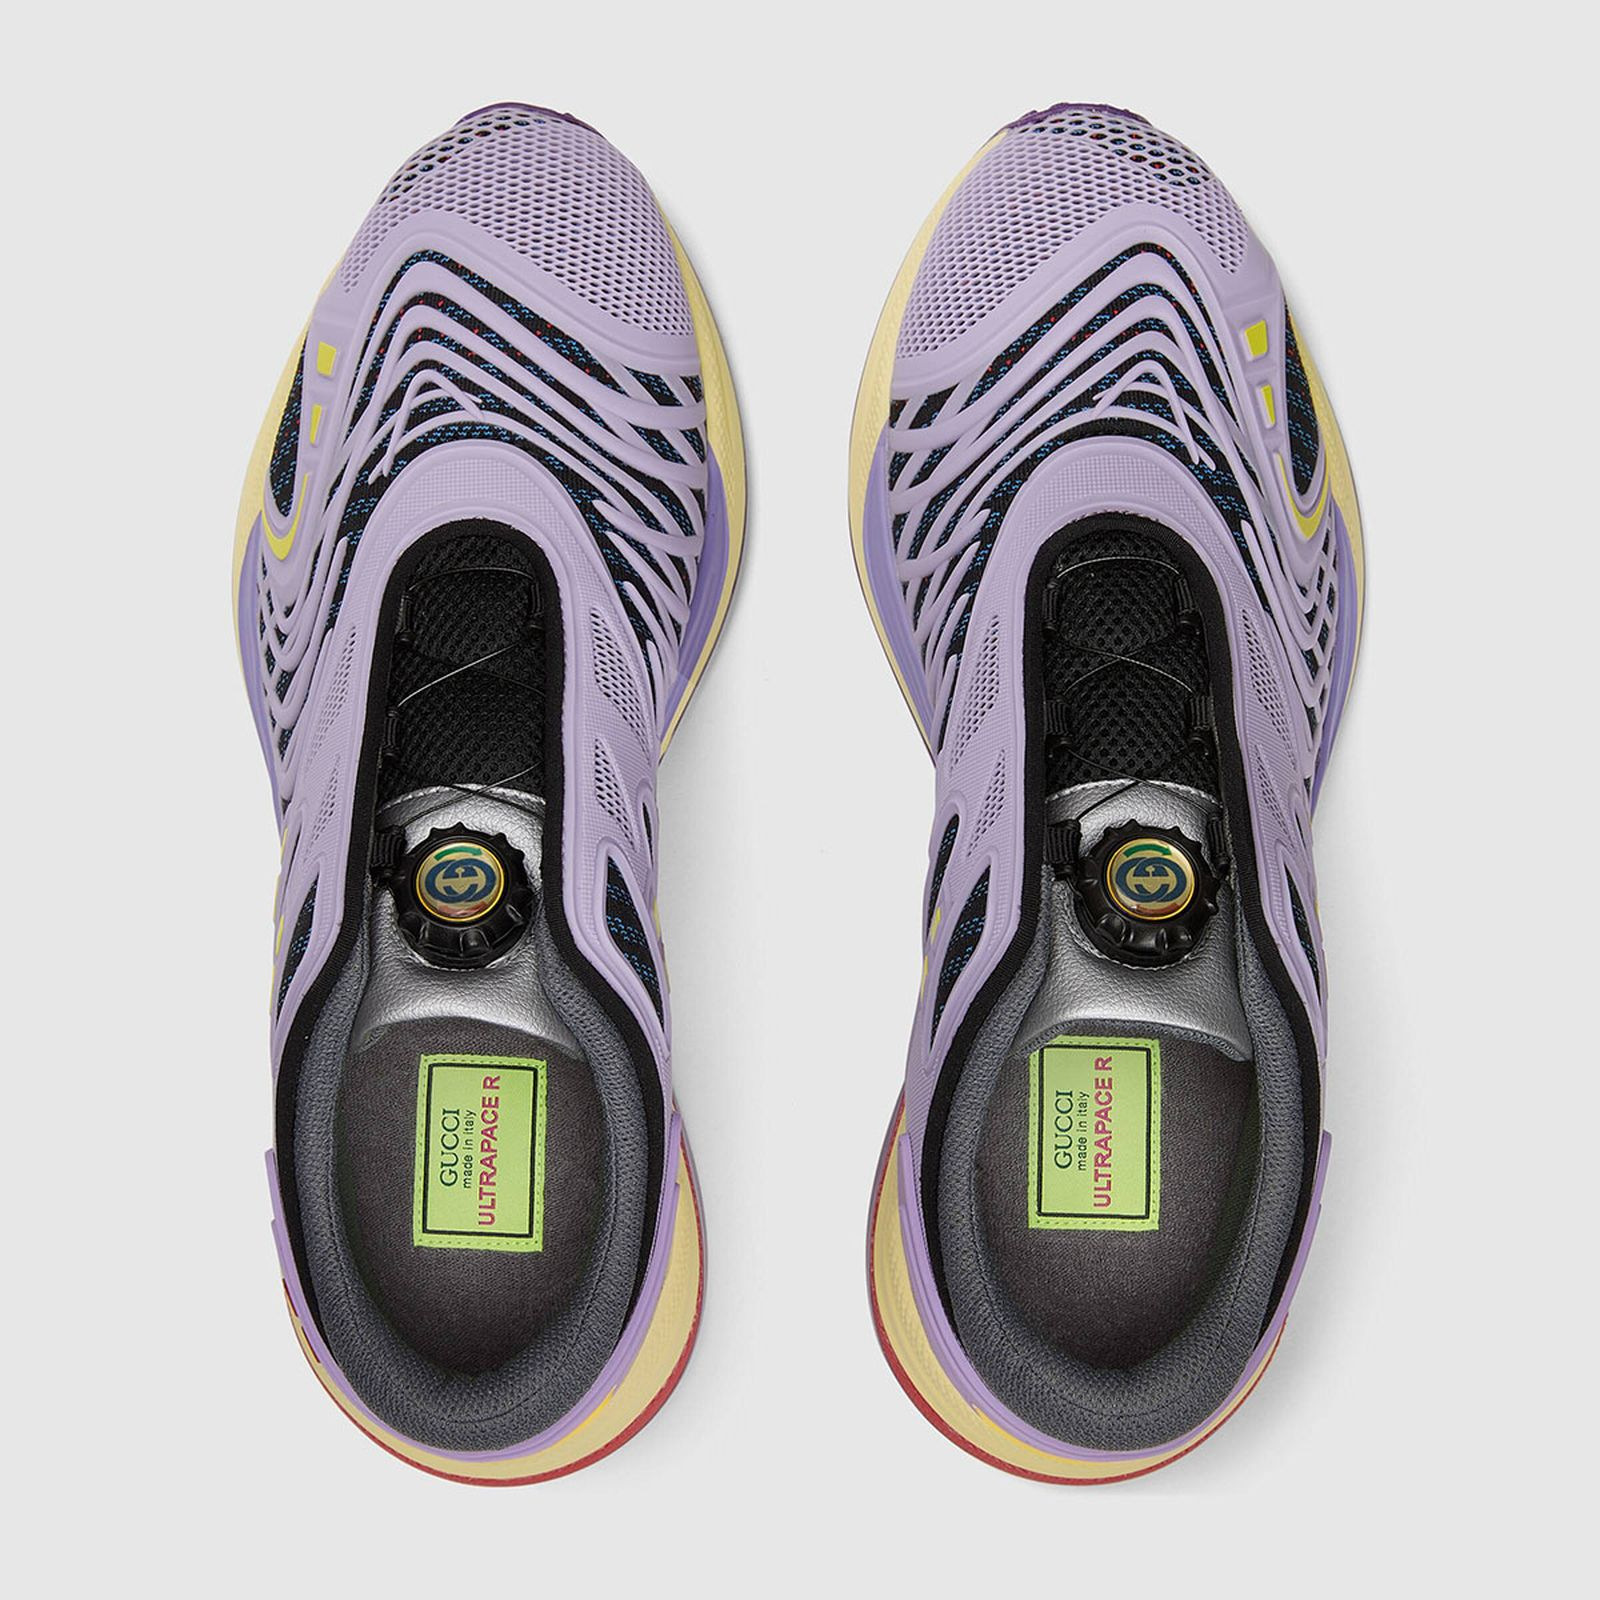 gucci-ultrapace-r-lilac-yellow-release-date-price-04